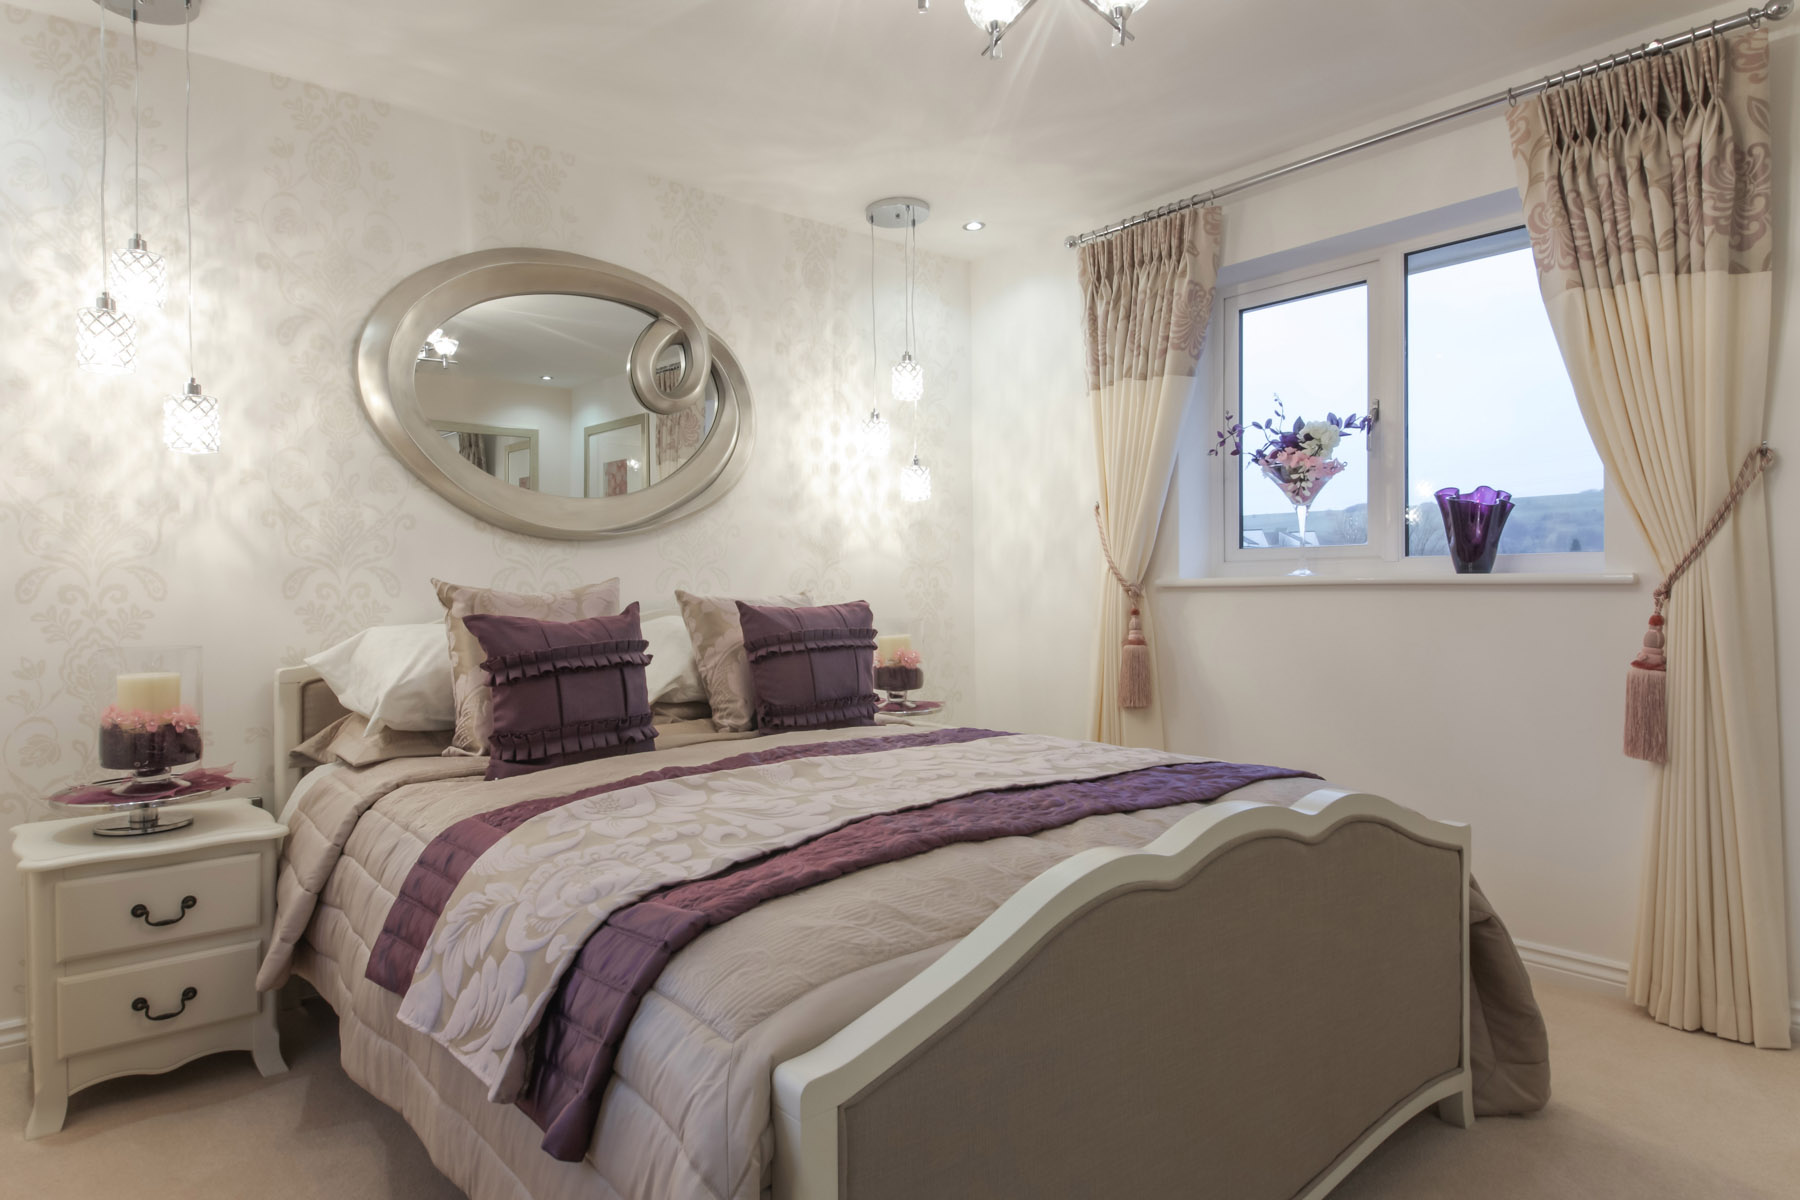 Typical Taylor Wimpey master bedroom